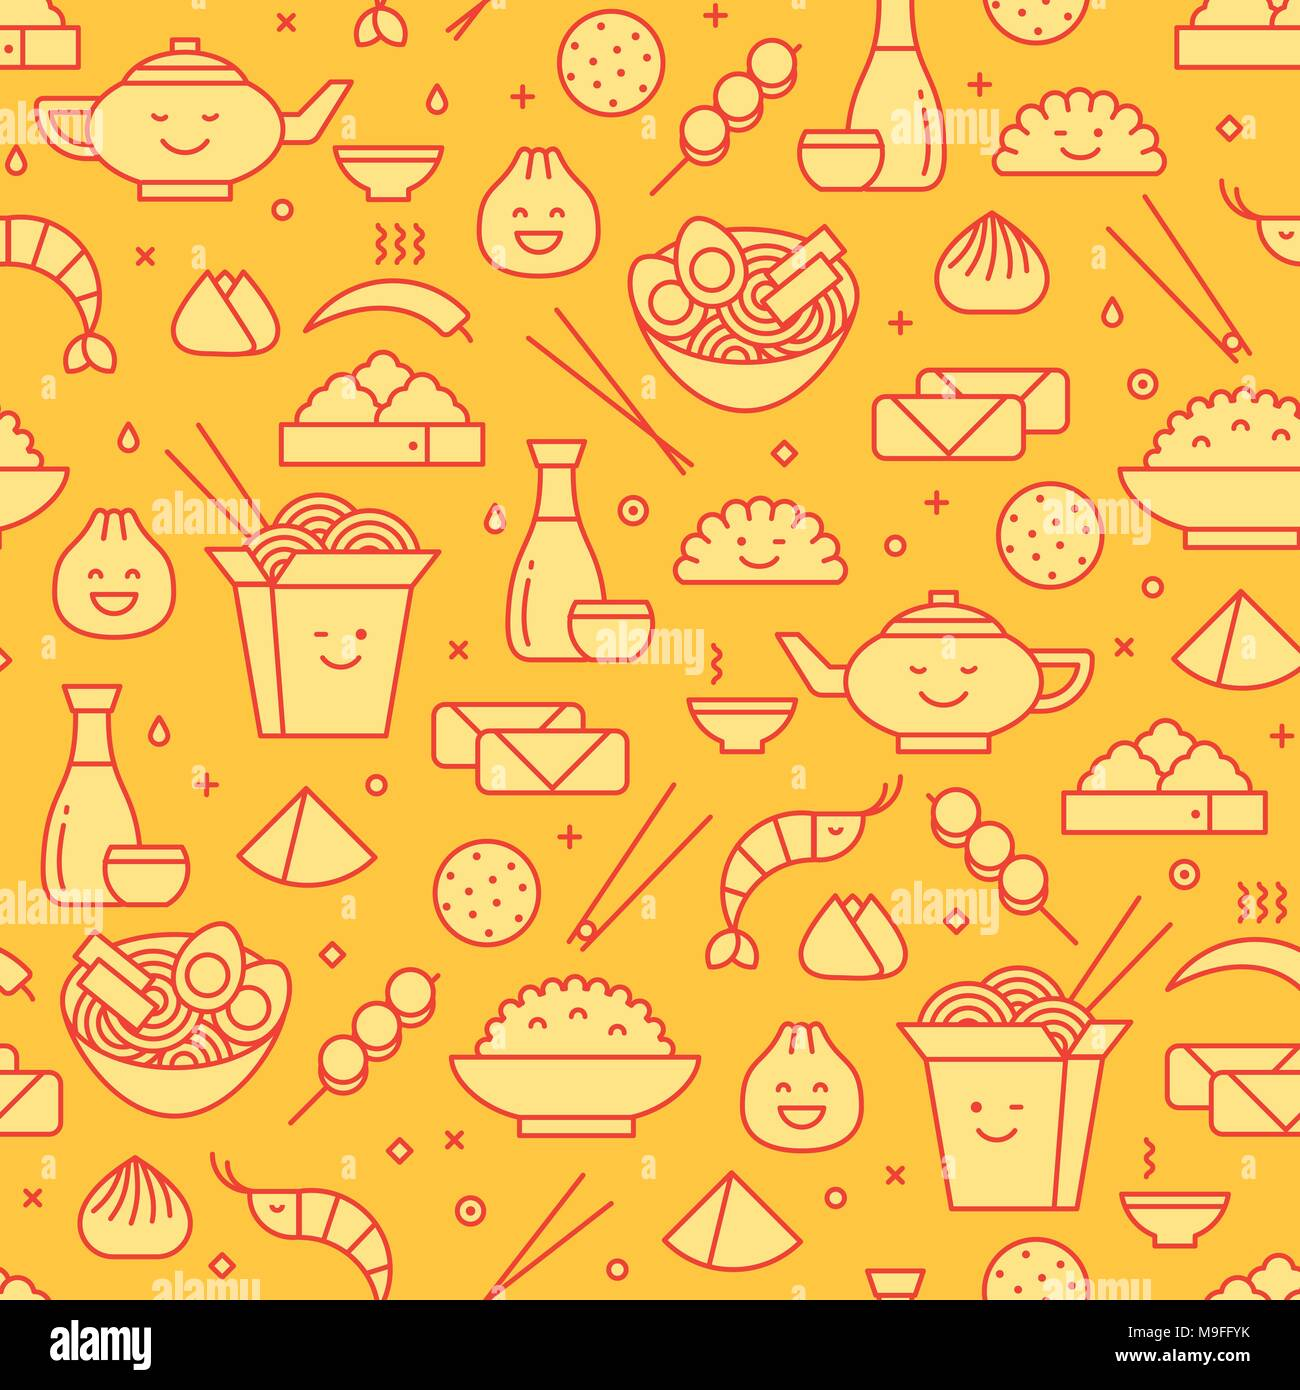 Vector seamless pattern with line icons of Chinese food. Traditional take away boxes, noodles, dim sum, ramen and spring rolls. Smiling faces kawaii. - Stock Vector